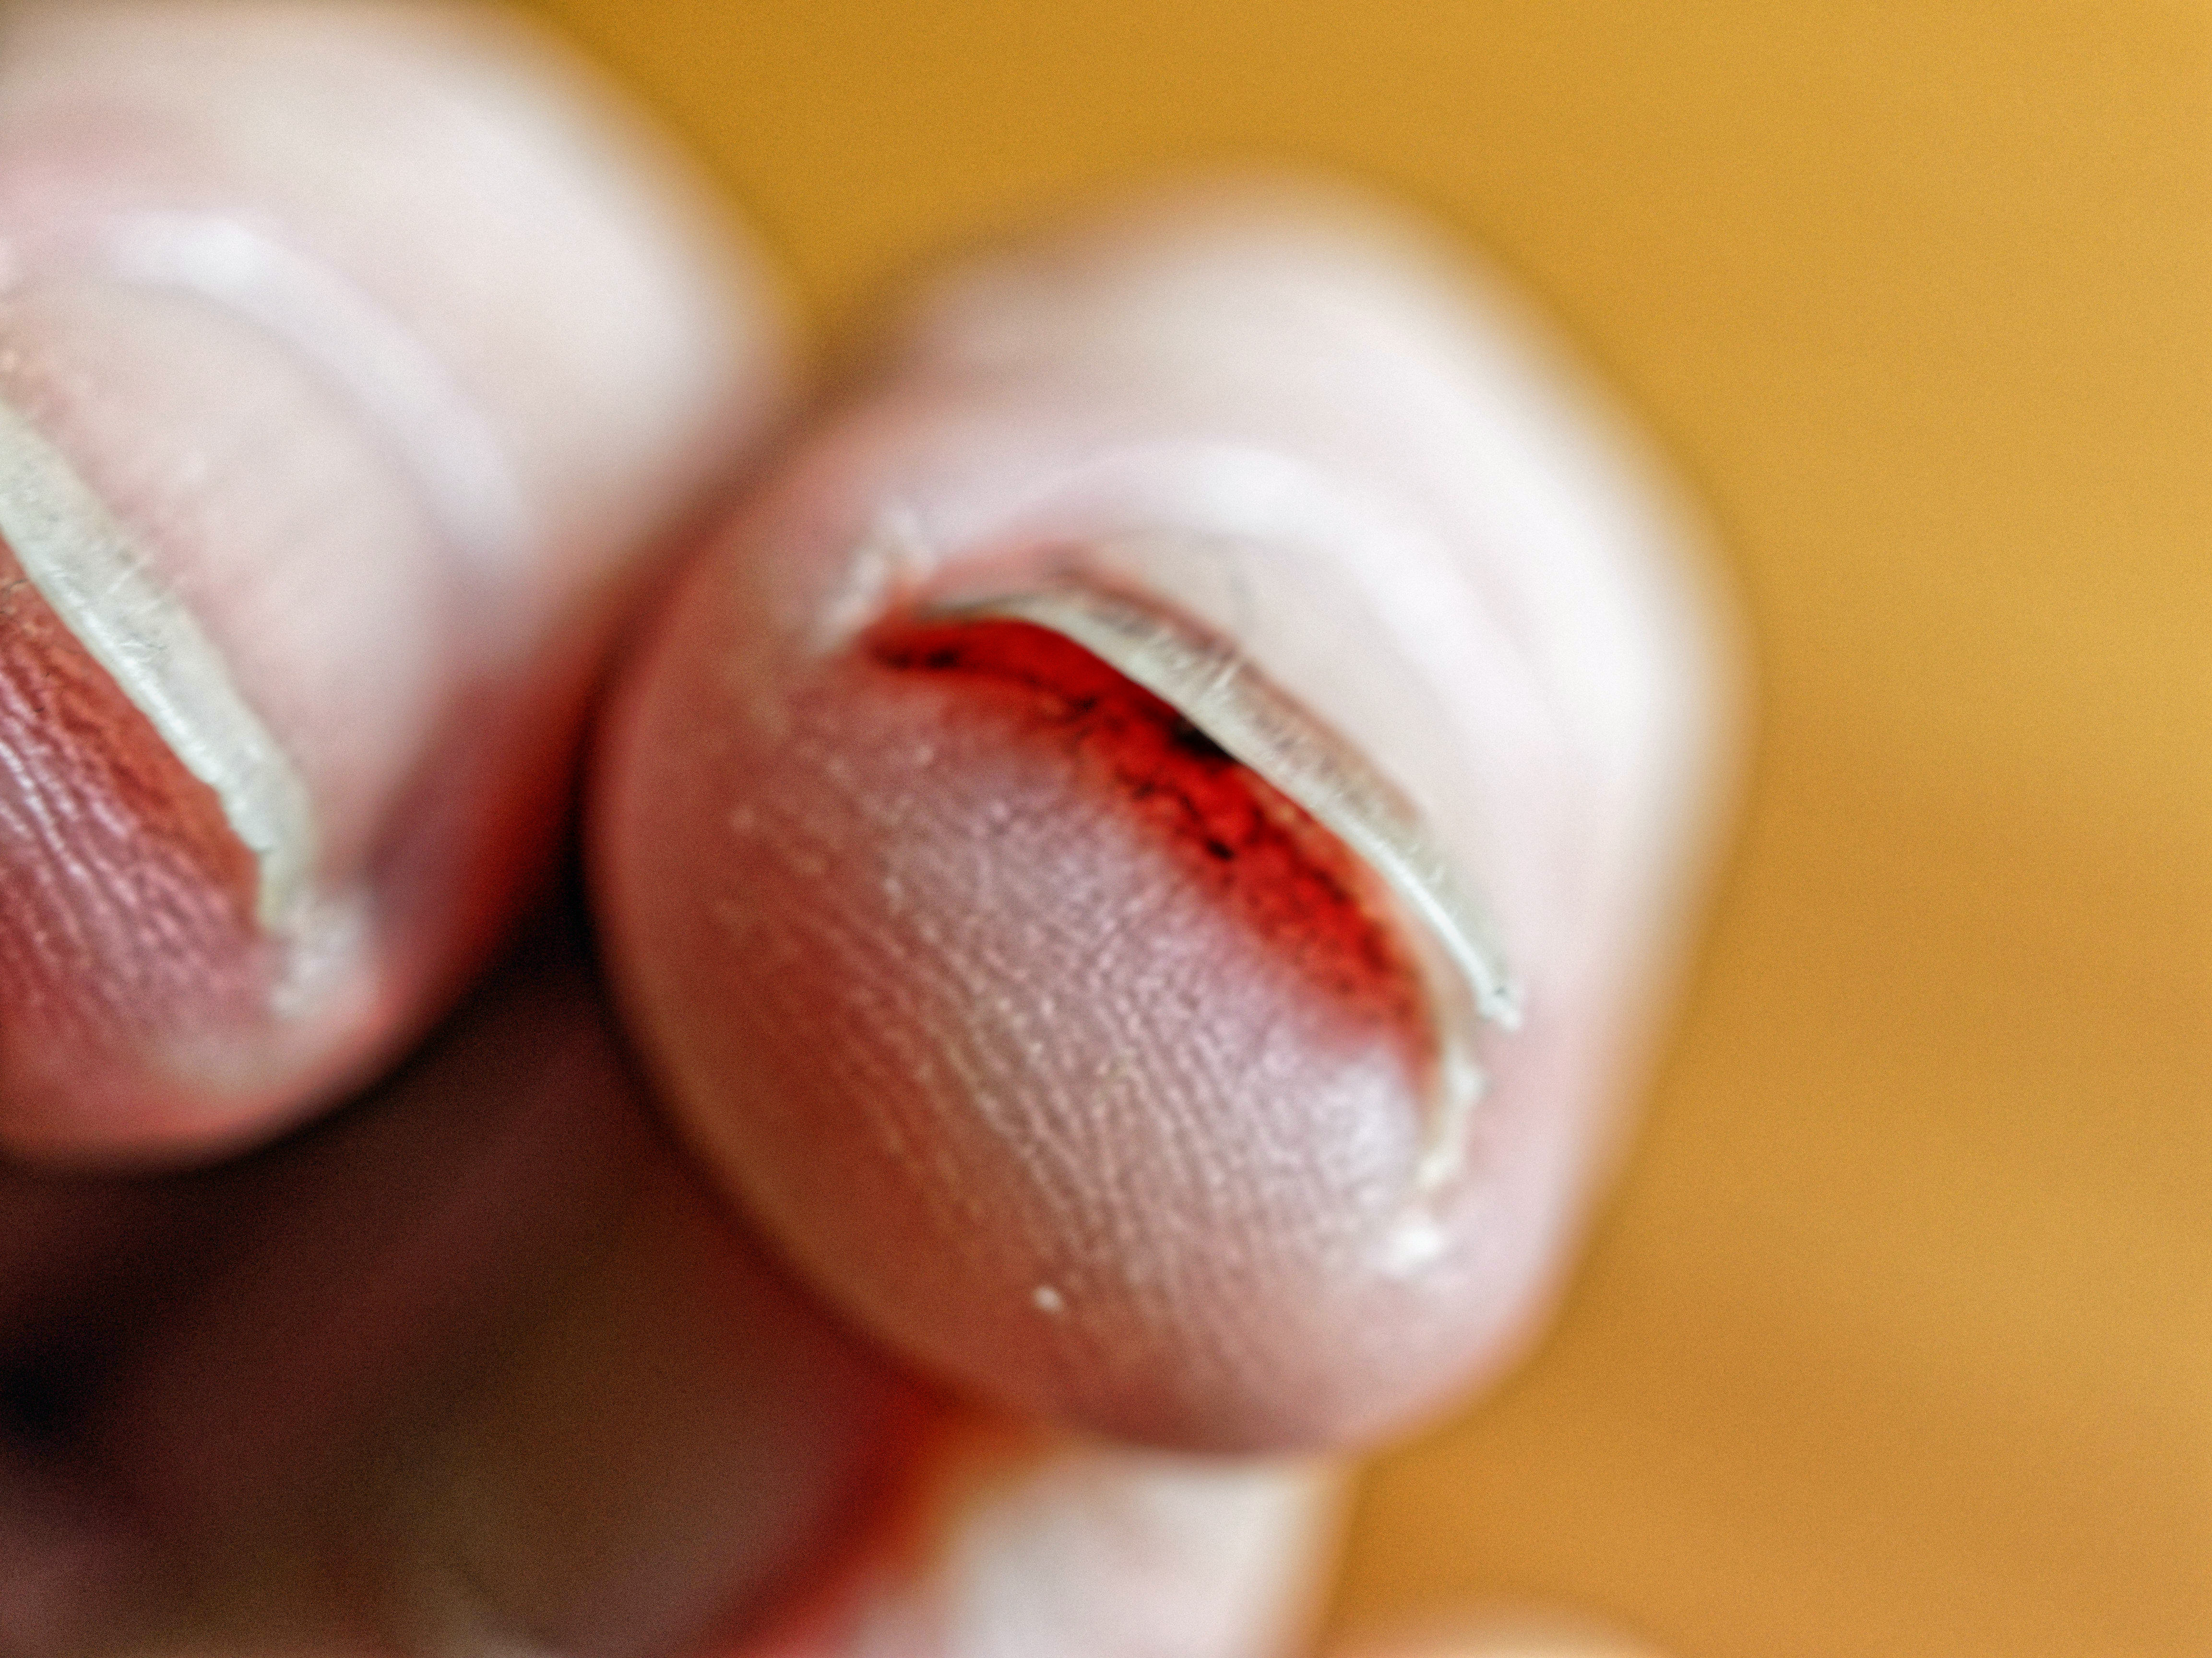 Fingernail-injury-6.jpeg